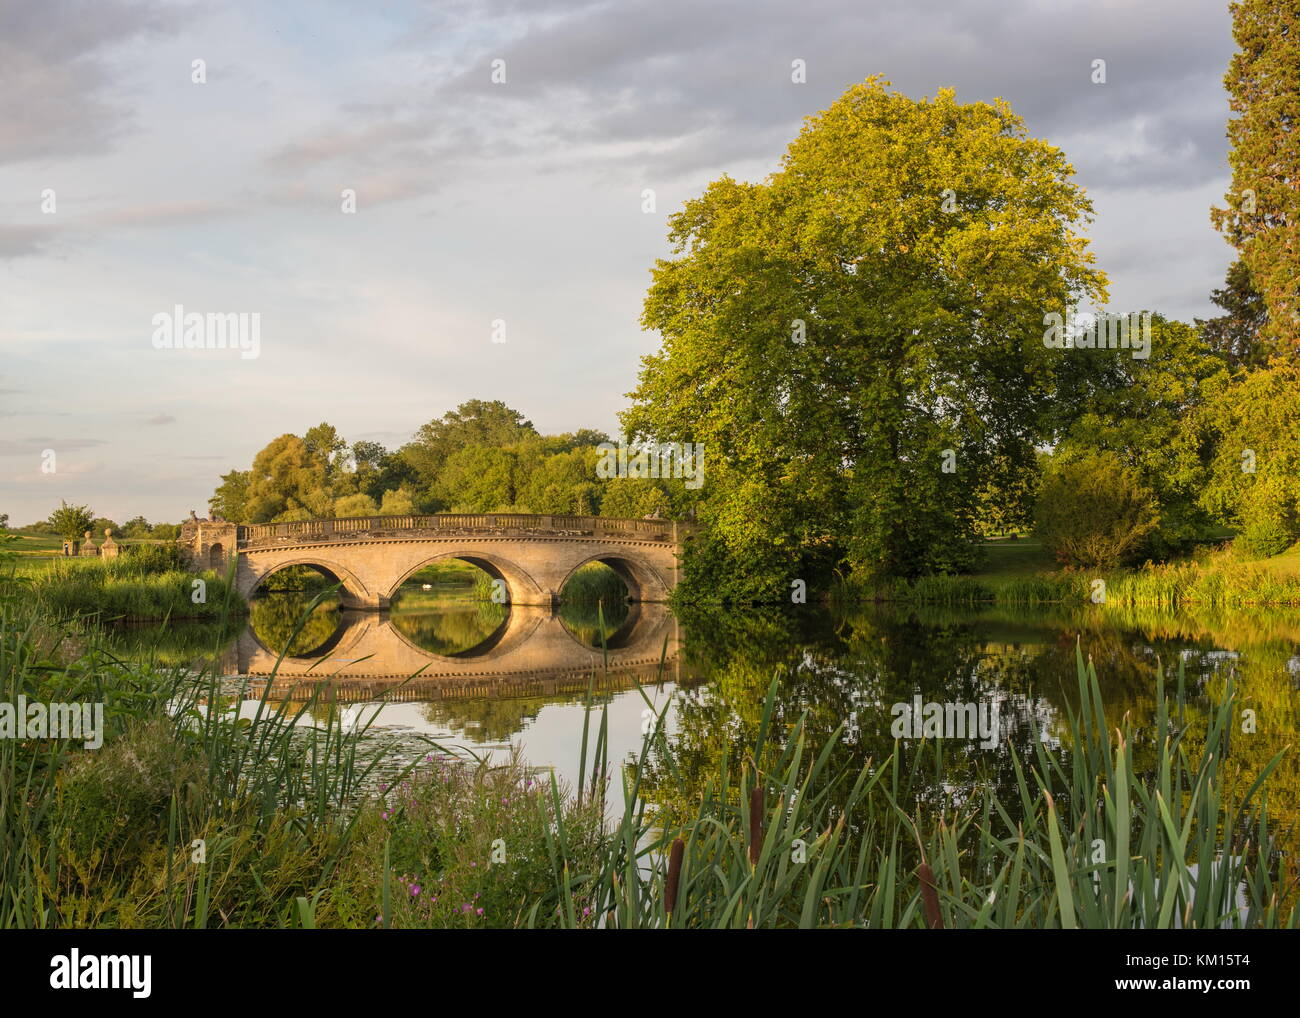 The beautiful sun setting catches a bridge at Compton Verney stately house in Warwickshire - Stock Image